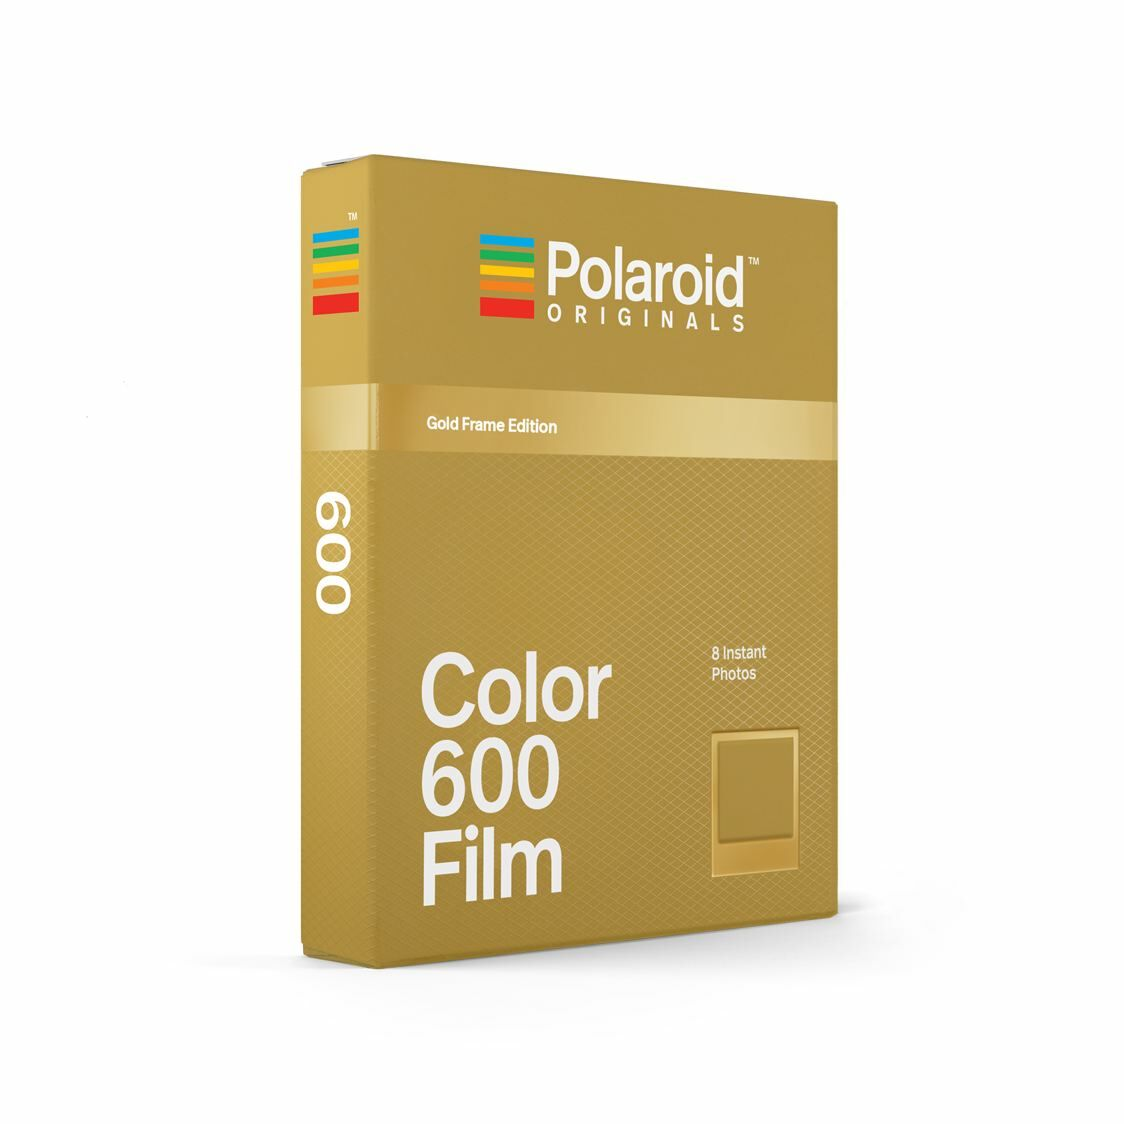 Polaroid Originals Film Colour Film 600 Metallic Gold